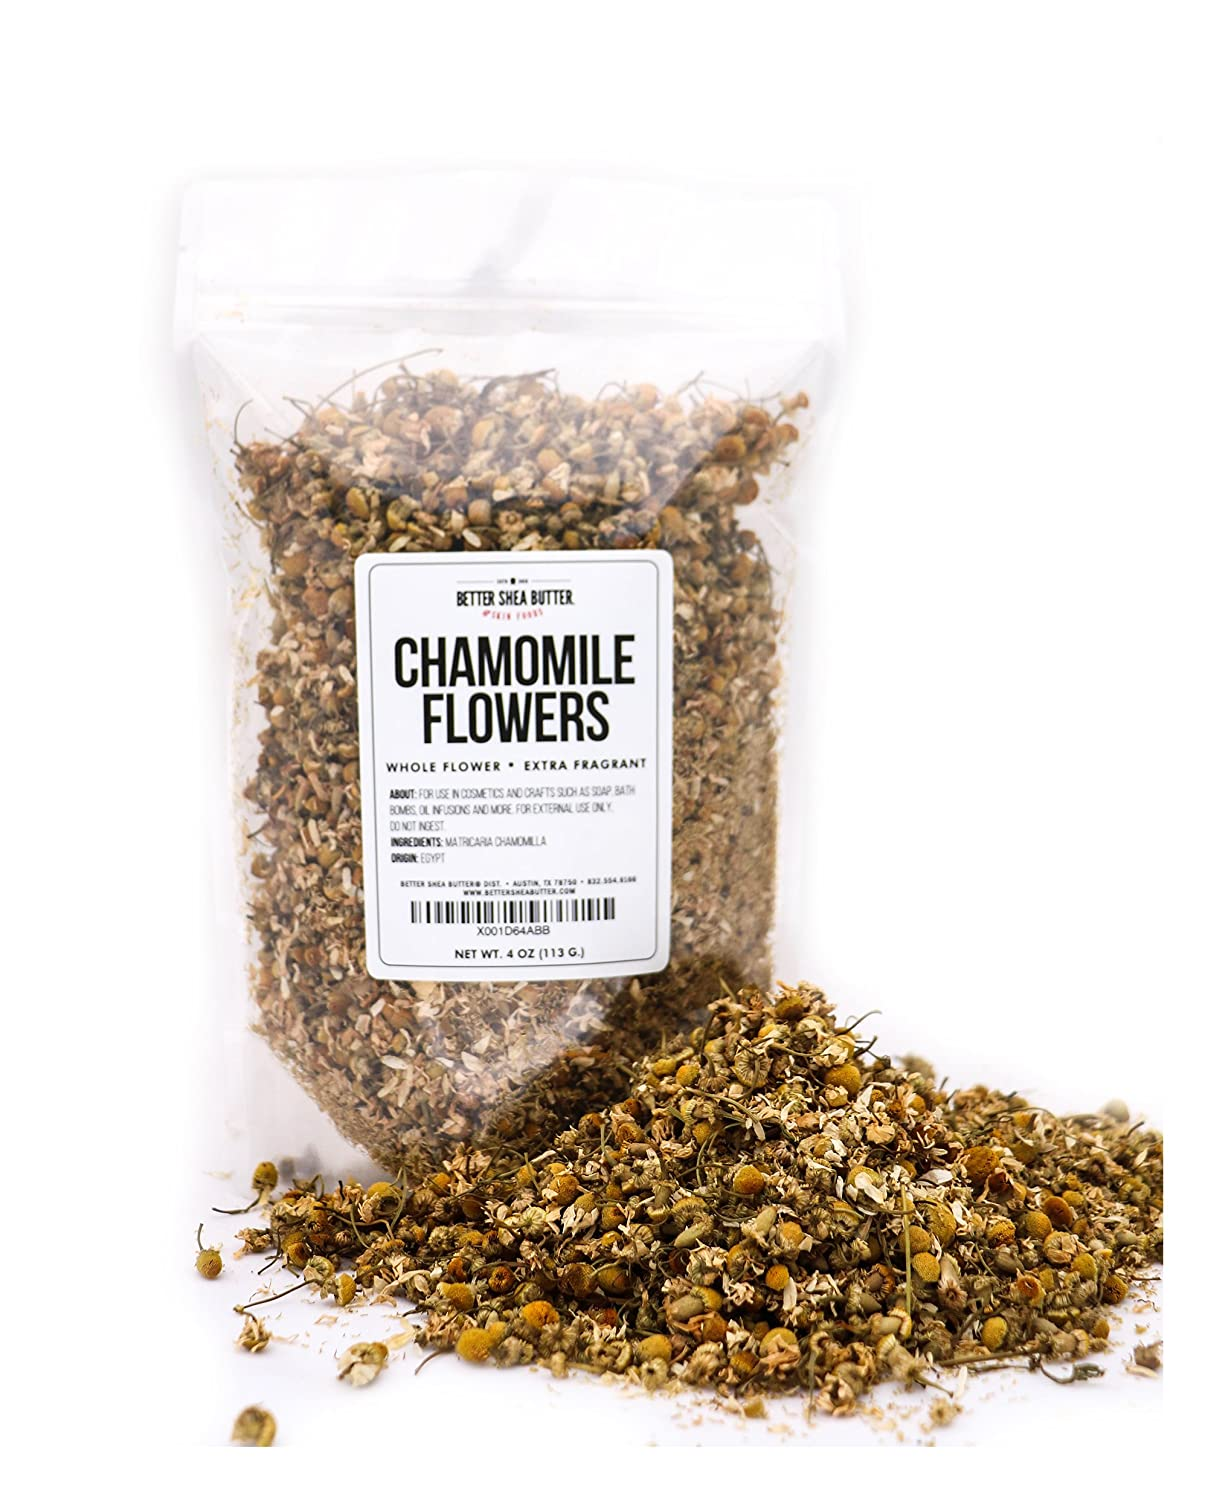 Chamomile Whole Flowers for Tea, Baking, Crafts, Sachets, Baths, Yoni Steam, Oil Infusions, Tinctures - 4oz in Resealable, Recyclable Pouch - by Better Shea Butter natural sleep aids Natural sleep aids – the best supplements to end sleepless nights 81tkhjJtRbL